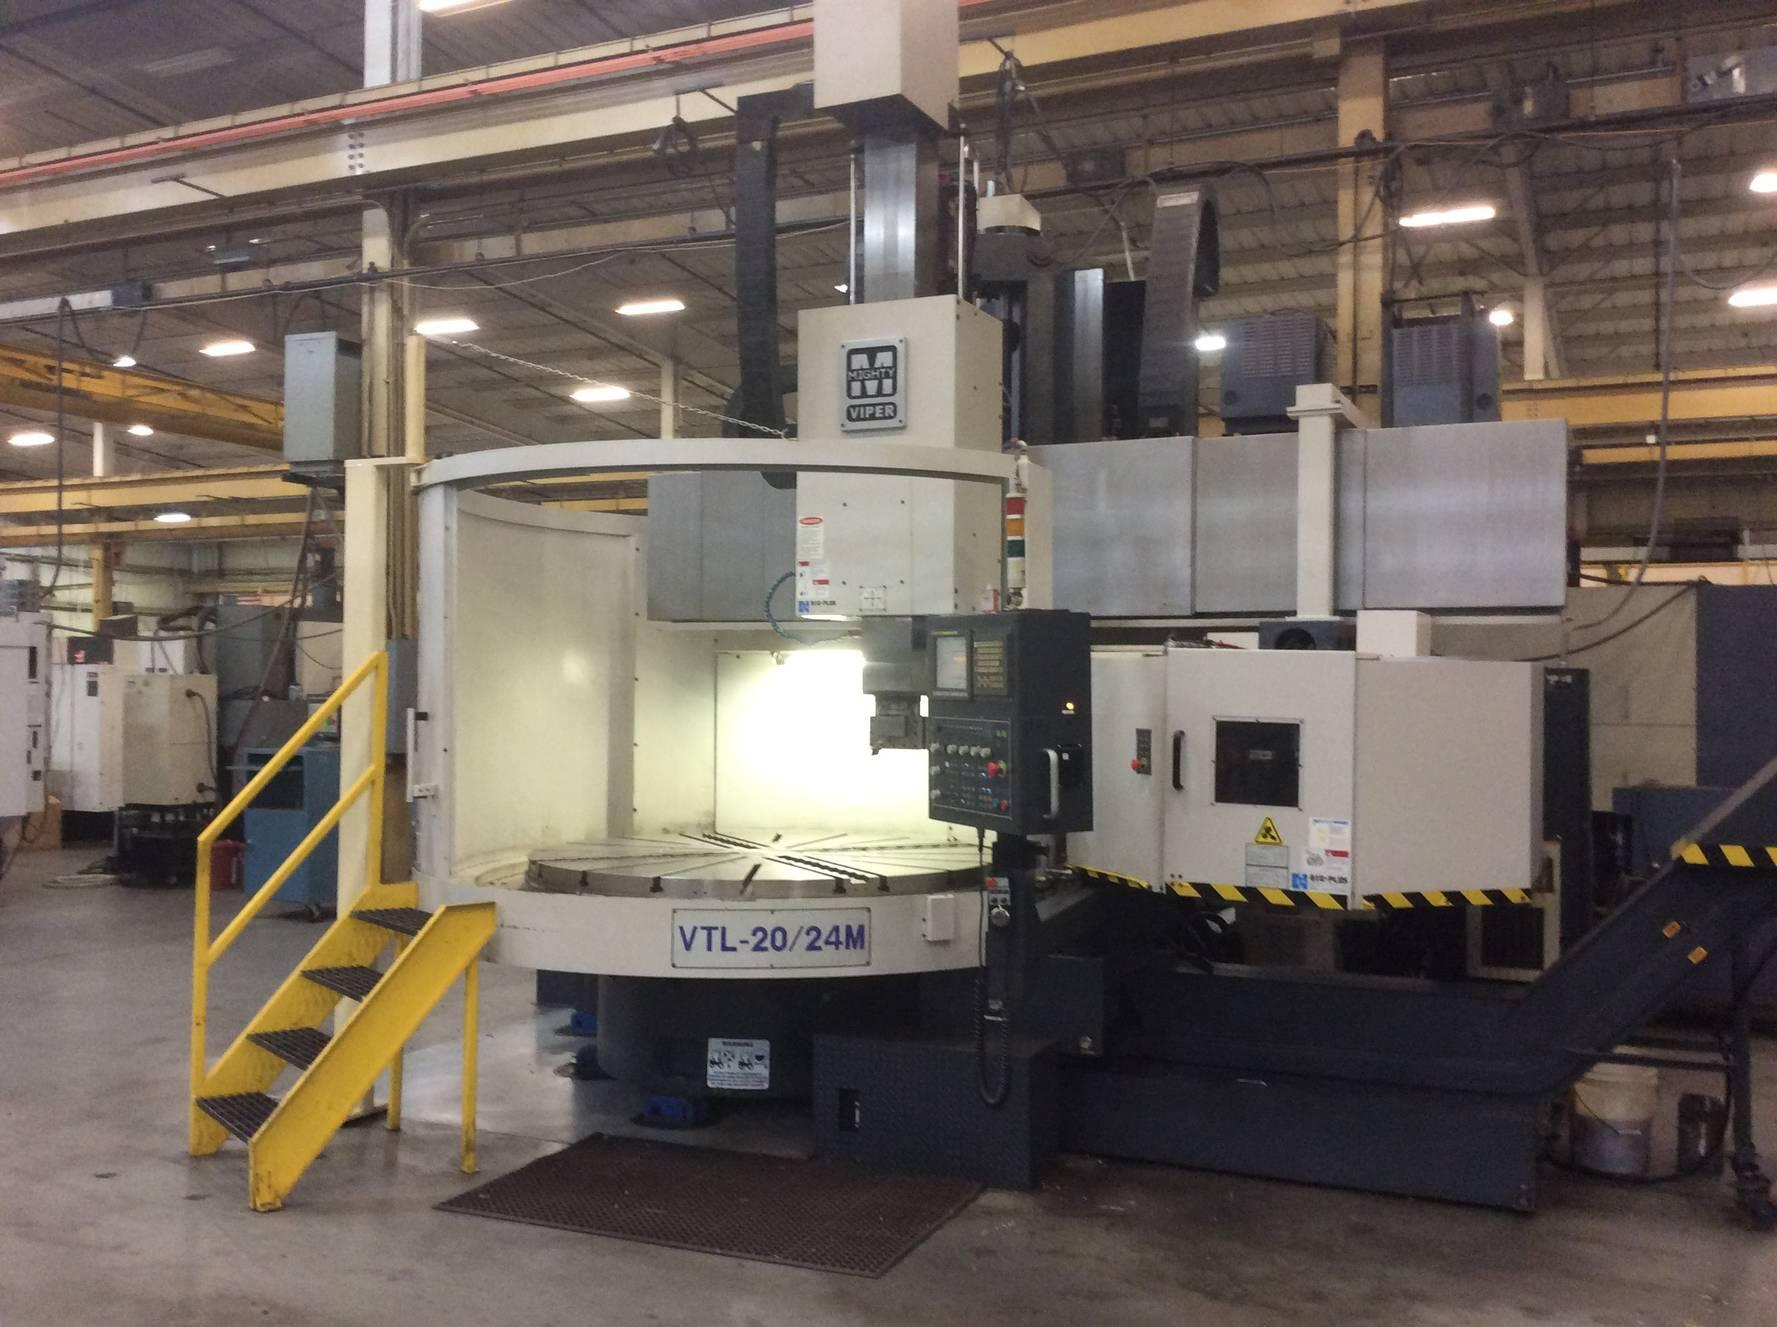 Mighty Viper VTL-20/24M CNC Vertical Lathe